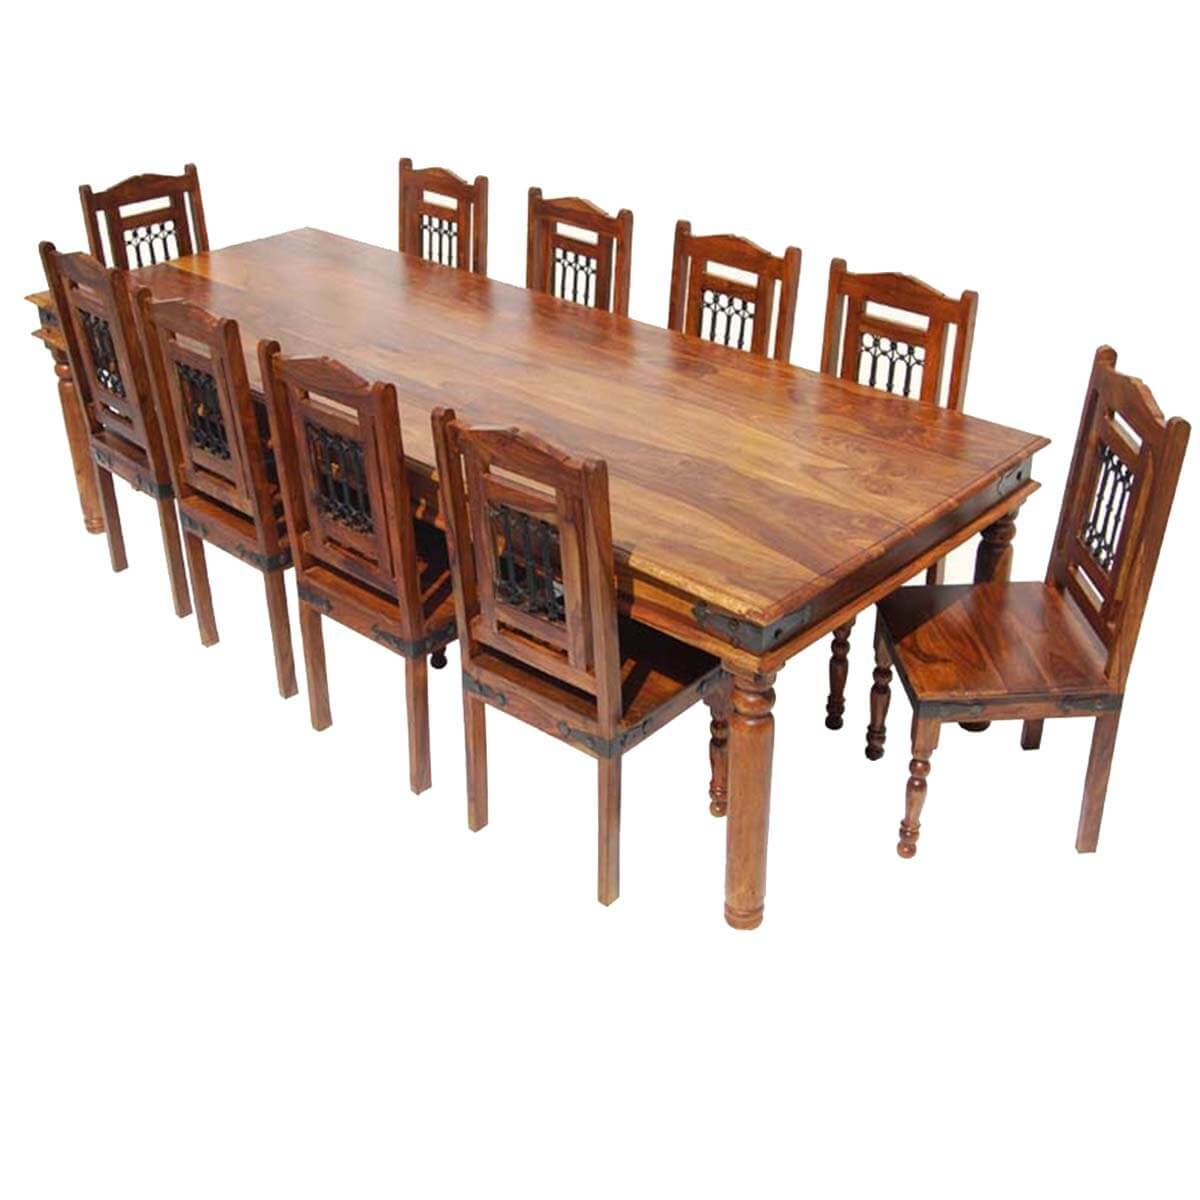 Solid wood large rustic dining room table chair buffet for Solid wood dining table sets